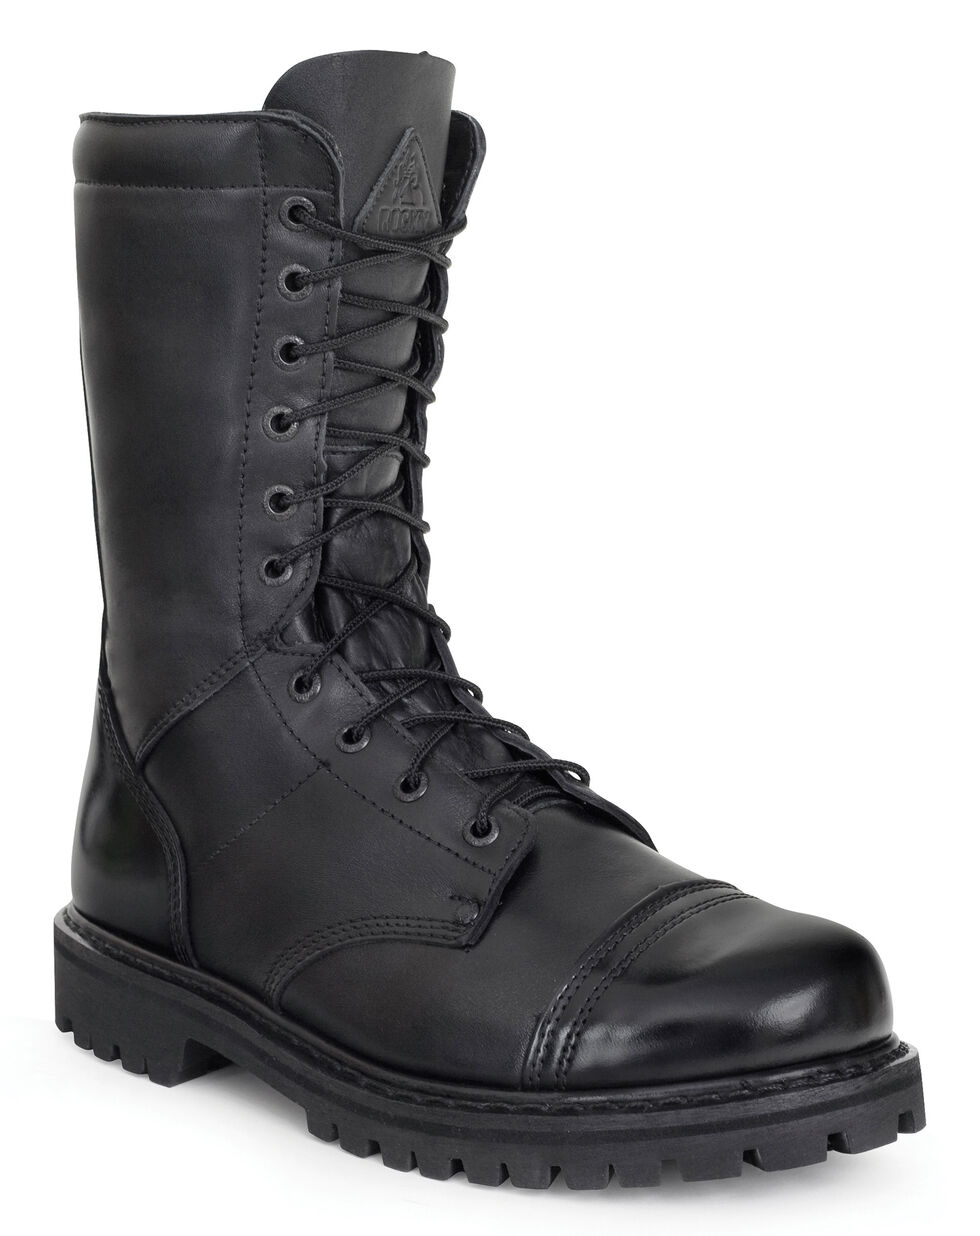 Rocky Waterproof Zipper Jump Boots - Round Toe, Black, hi-res